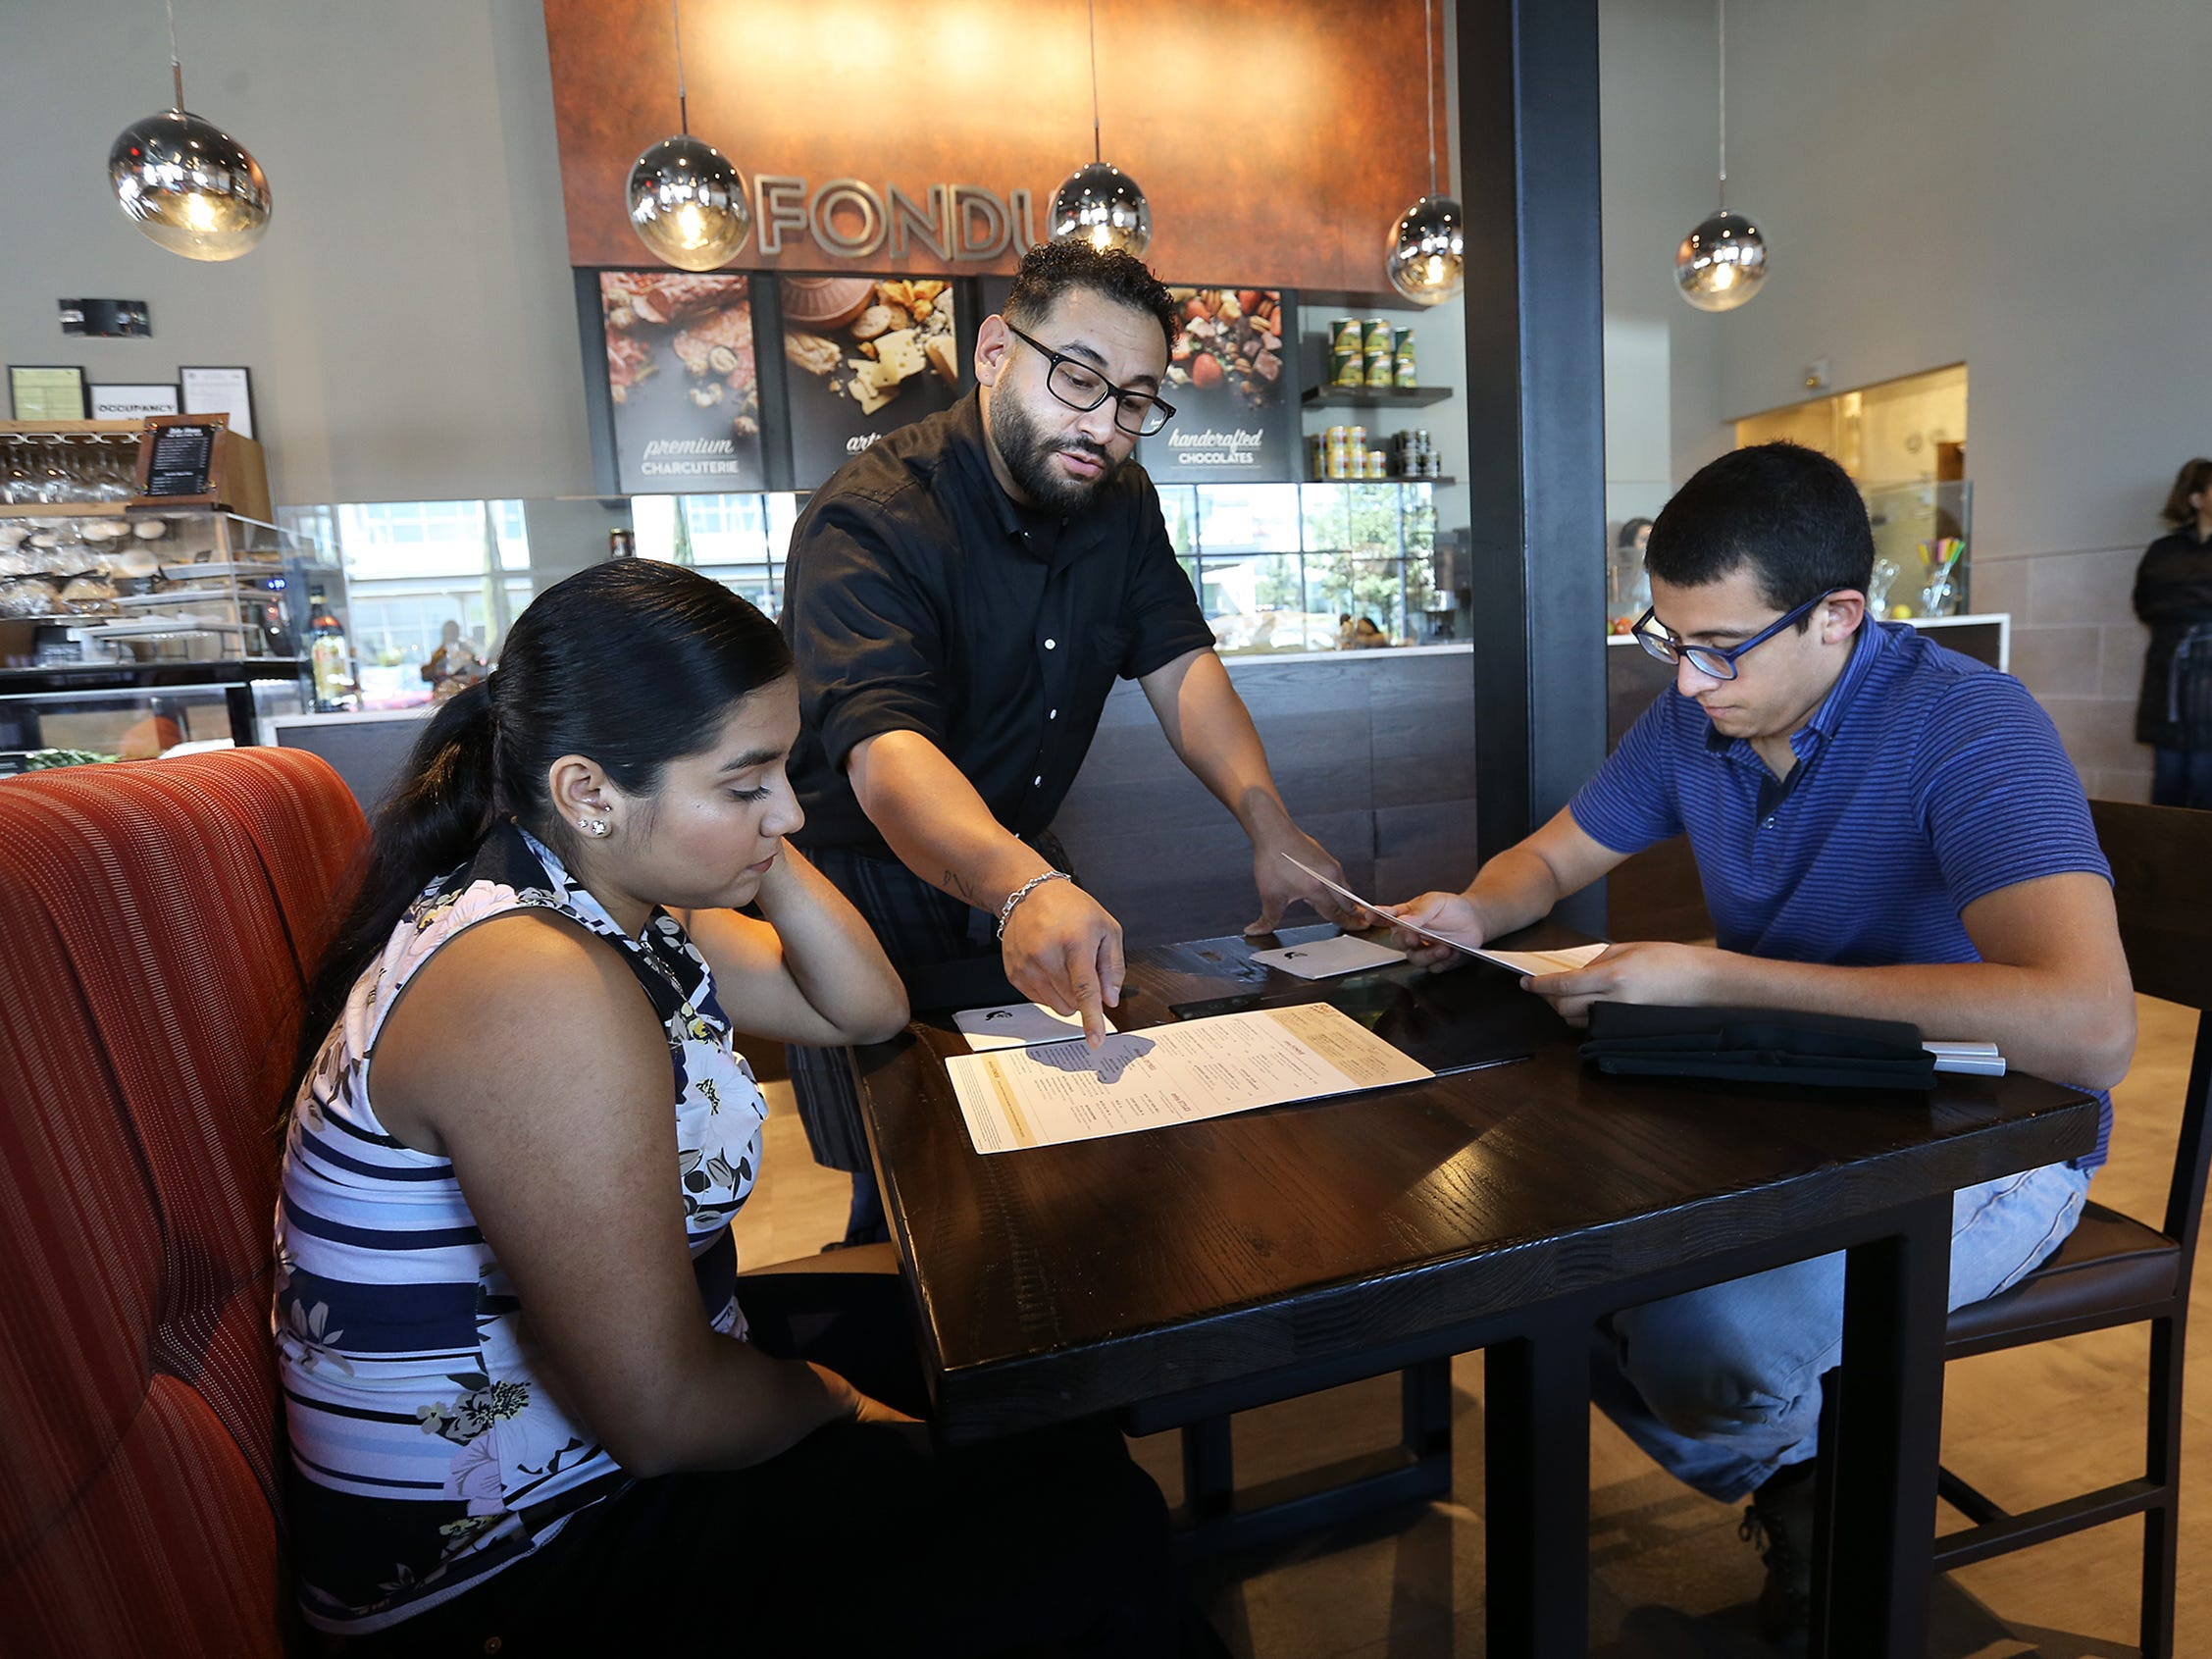 The Melting Pot server Alexander Salas walks customers Vanessa Maldonado and Joshua Lopez through the menu options at the newly opened fondue restaurant at The Fountains at Farah Tuesday.